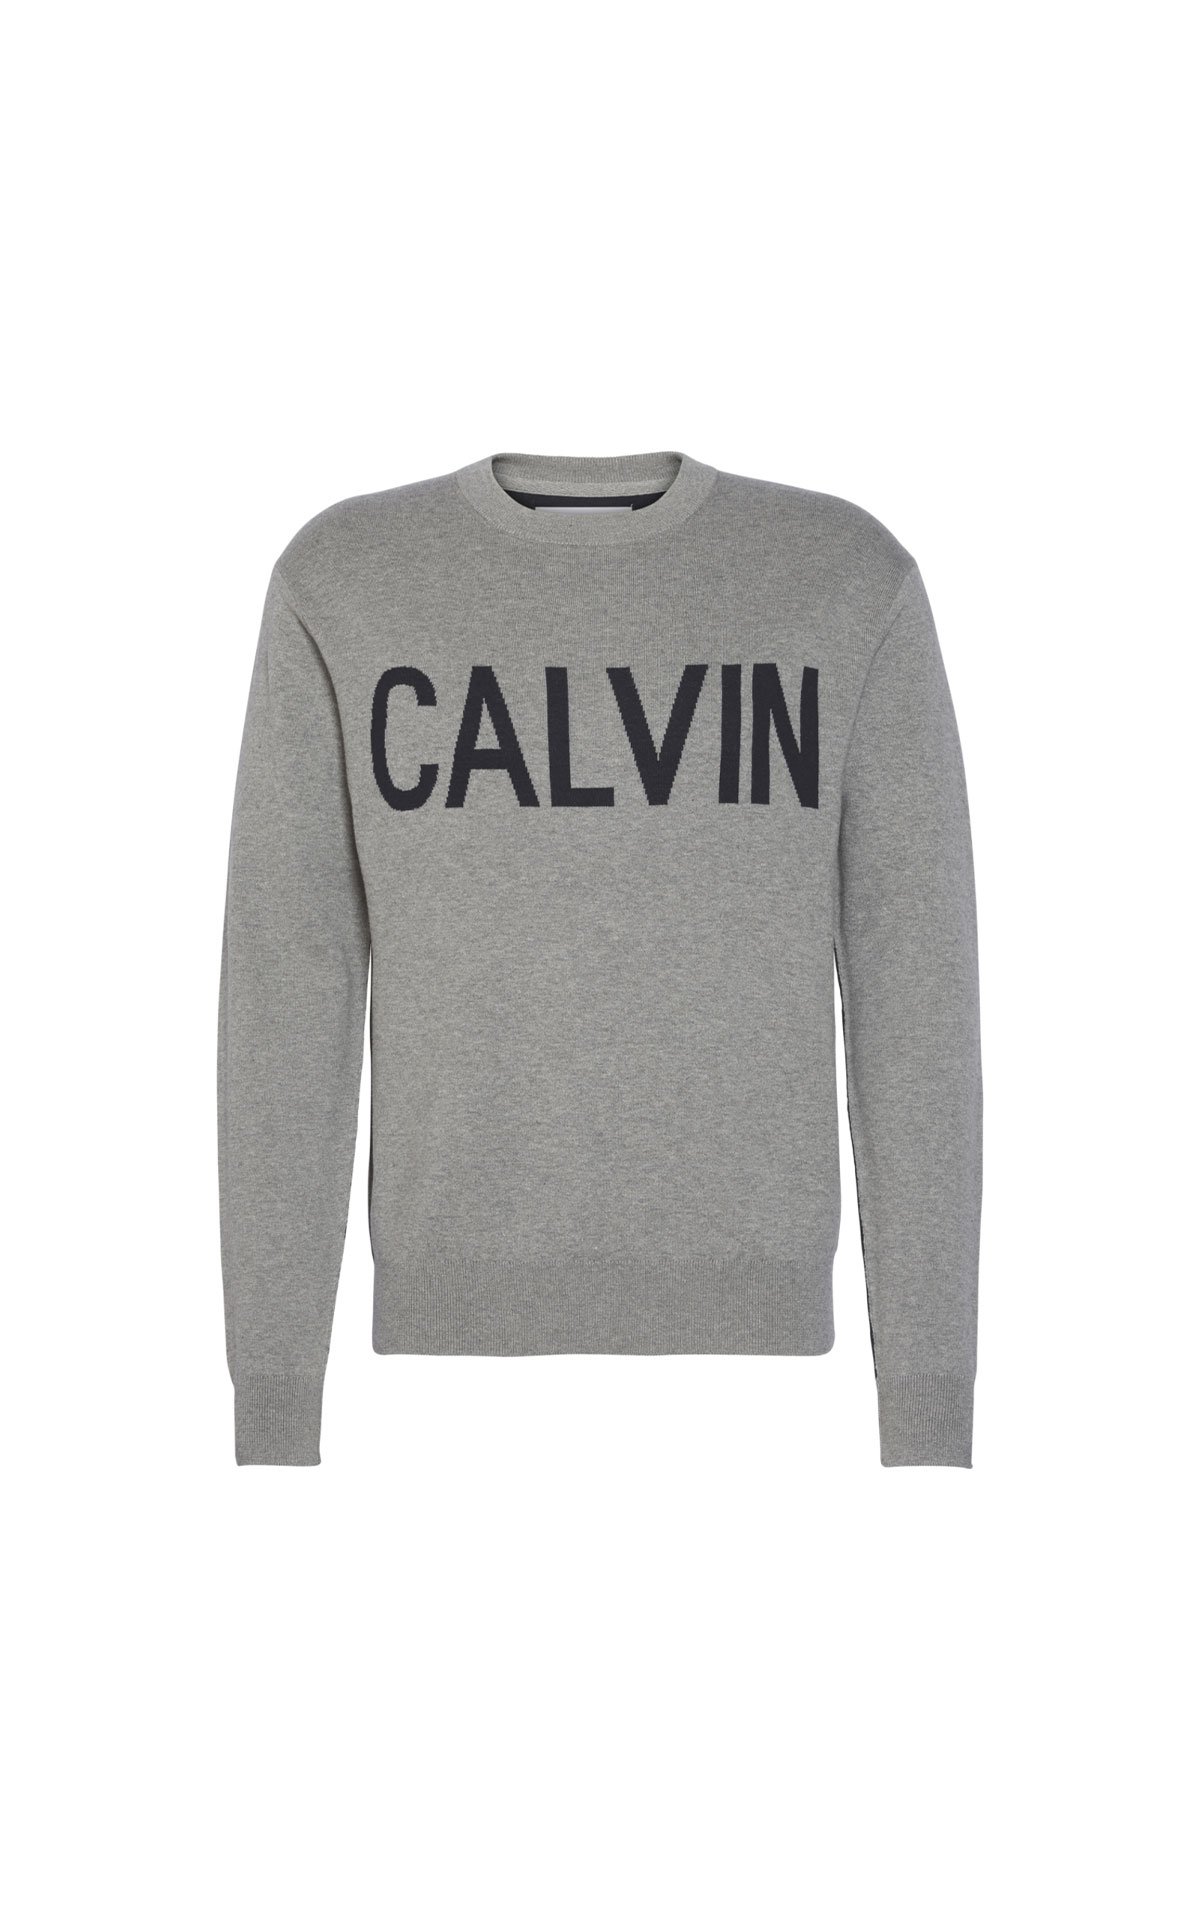 Calvin Klein Logo sweater from Bicester Village